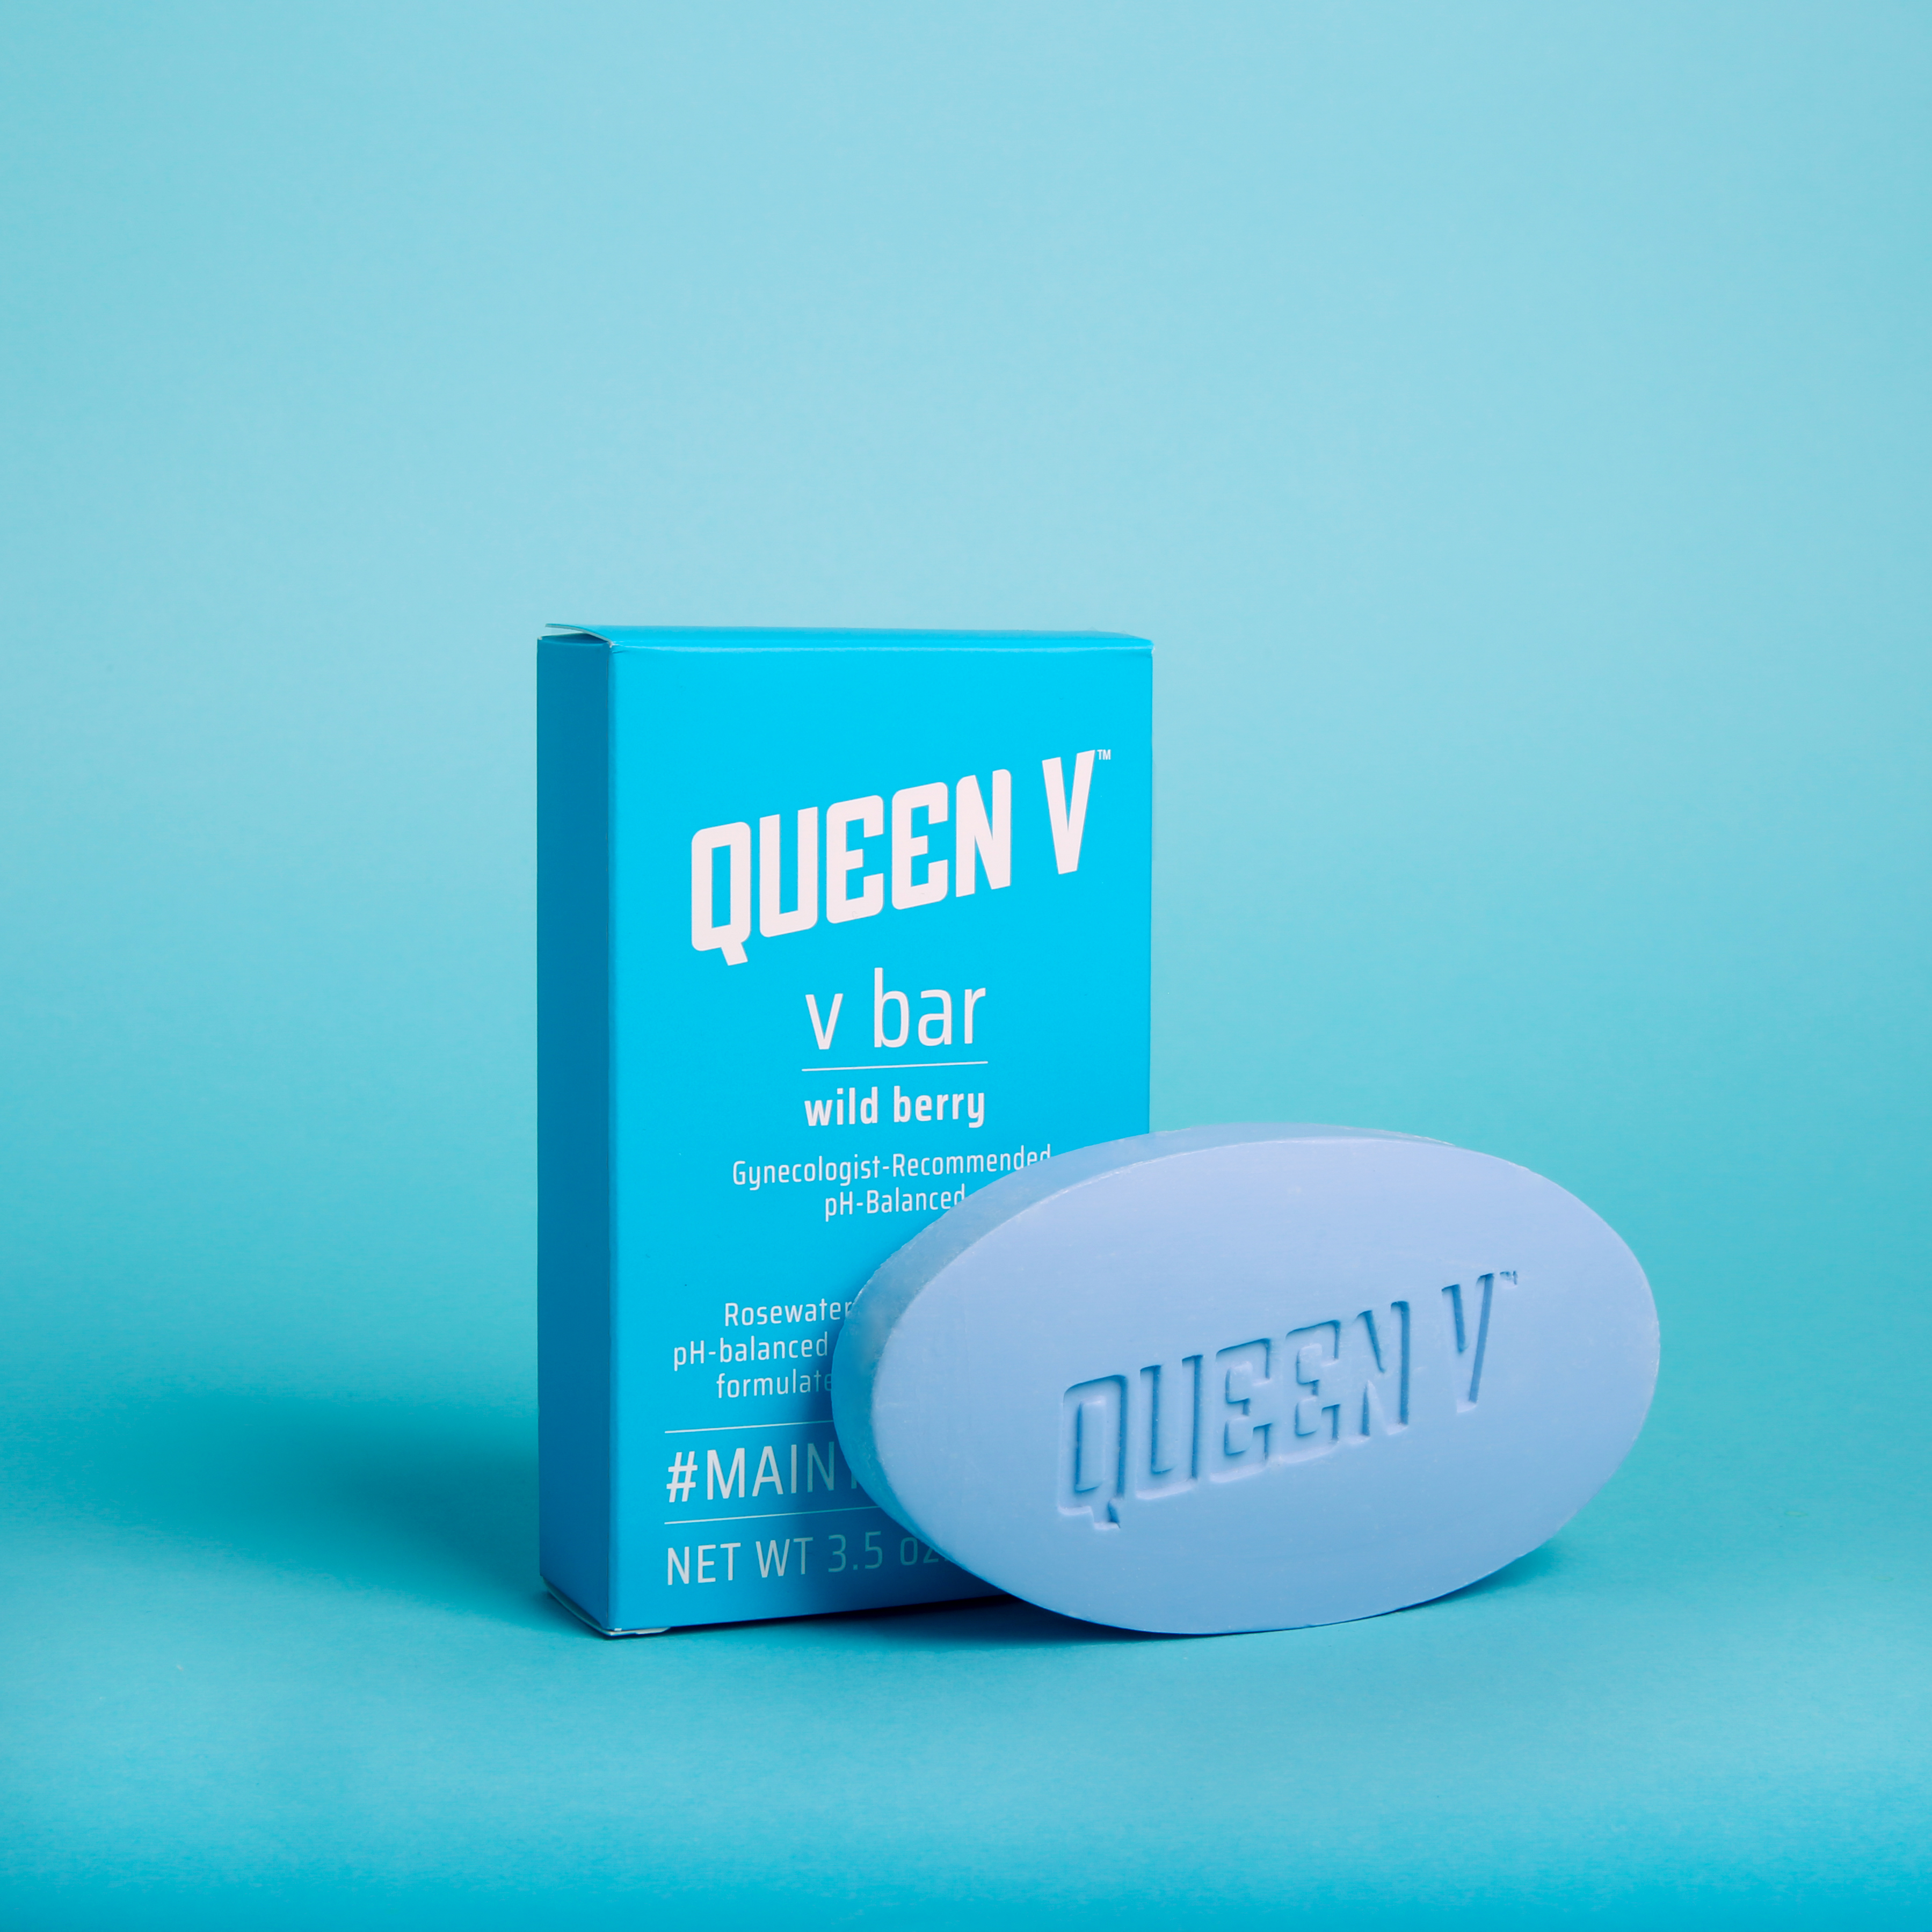 Queen V Wants To Increase Your Vagina Confidence From The Inside Out